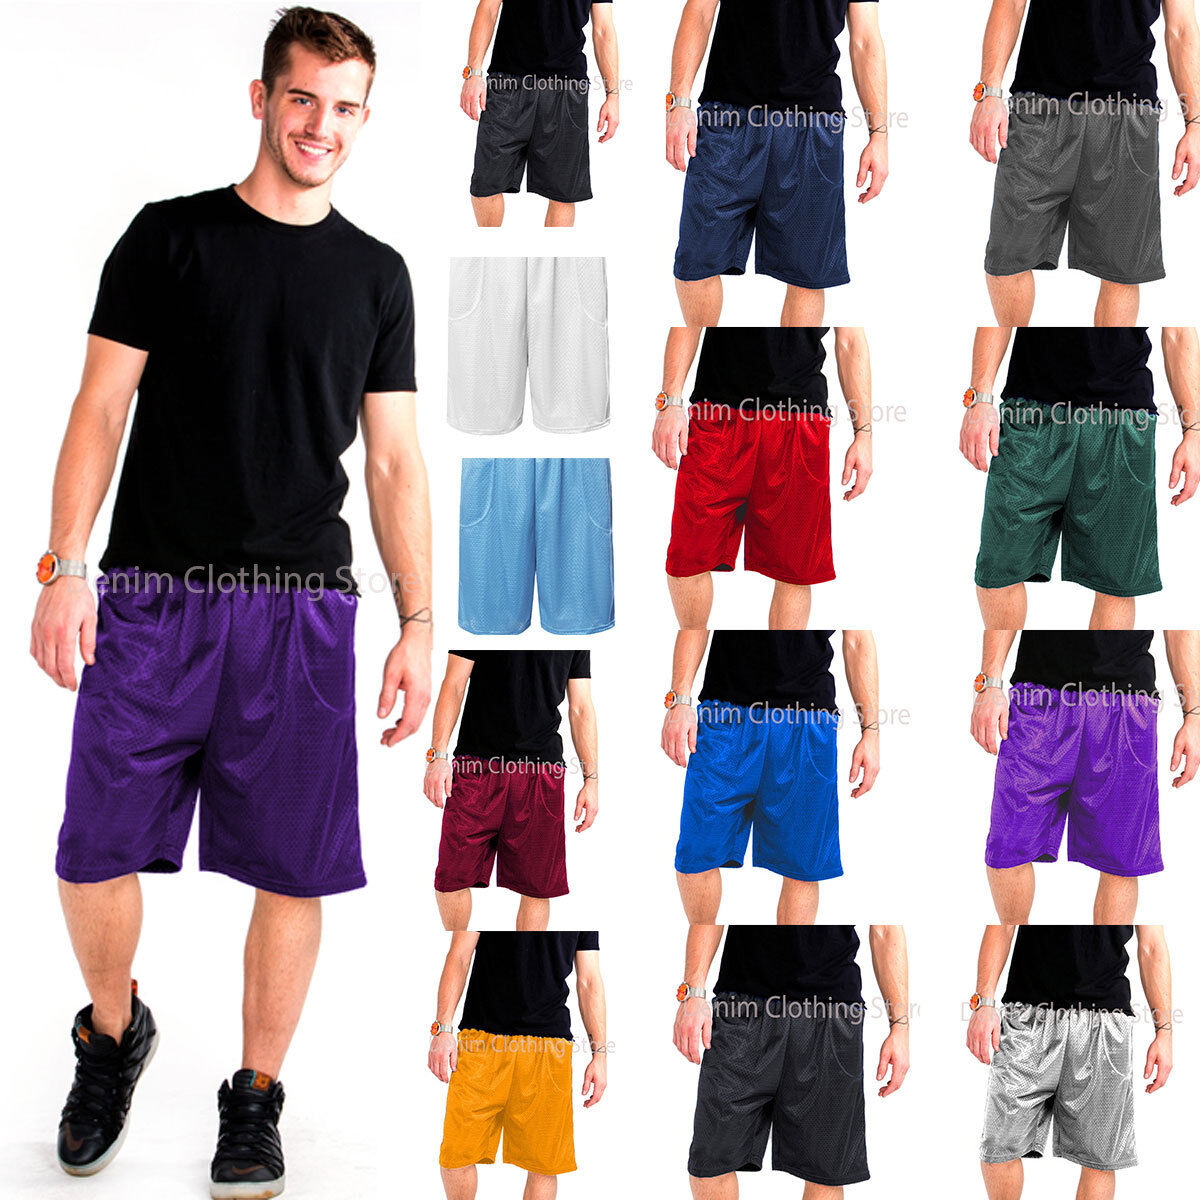 MENS ATHLETIC JERSEY 2 POCKET MESH SHORTS GYM WORKOUT BASKET